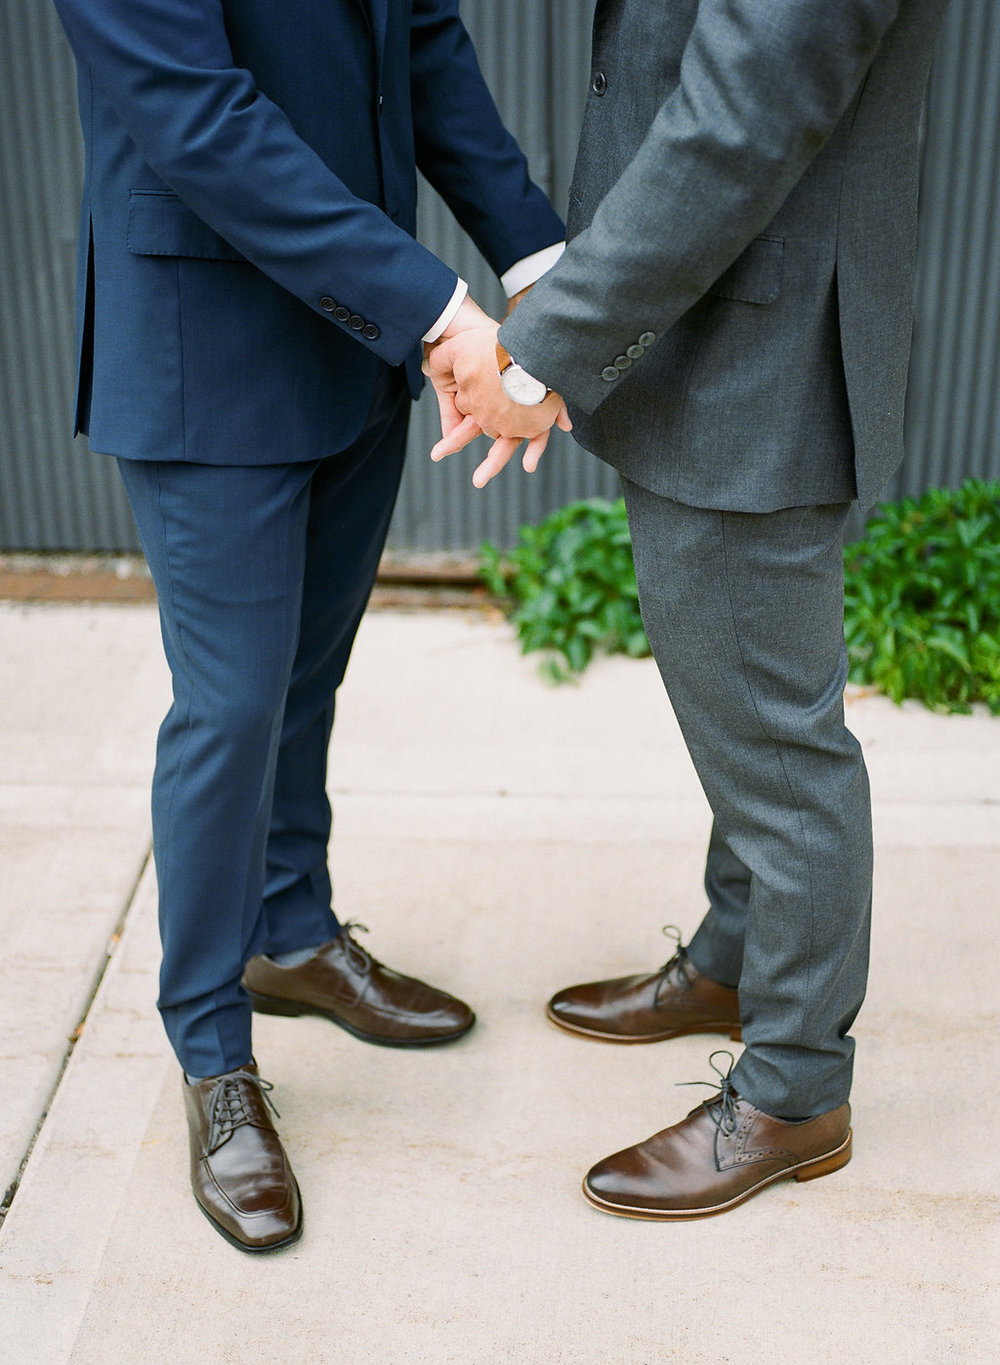 Carly Milbrath Photography | Justin and Jacob | PAIKKA Minnesota Wedding Venue | Same sex wedding with two grooms hand holding photo